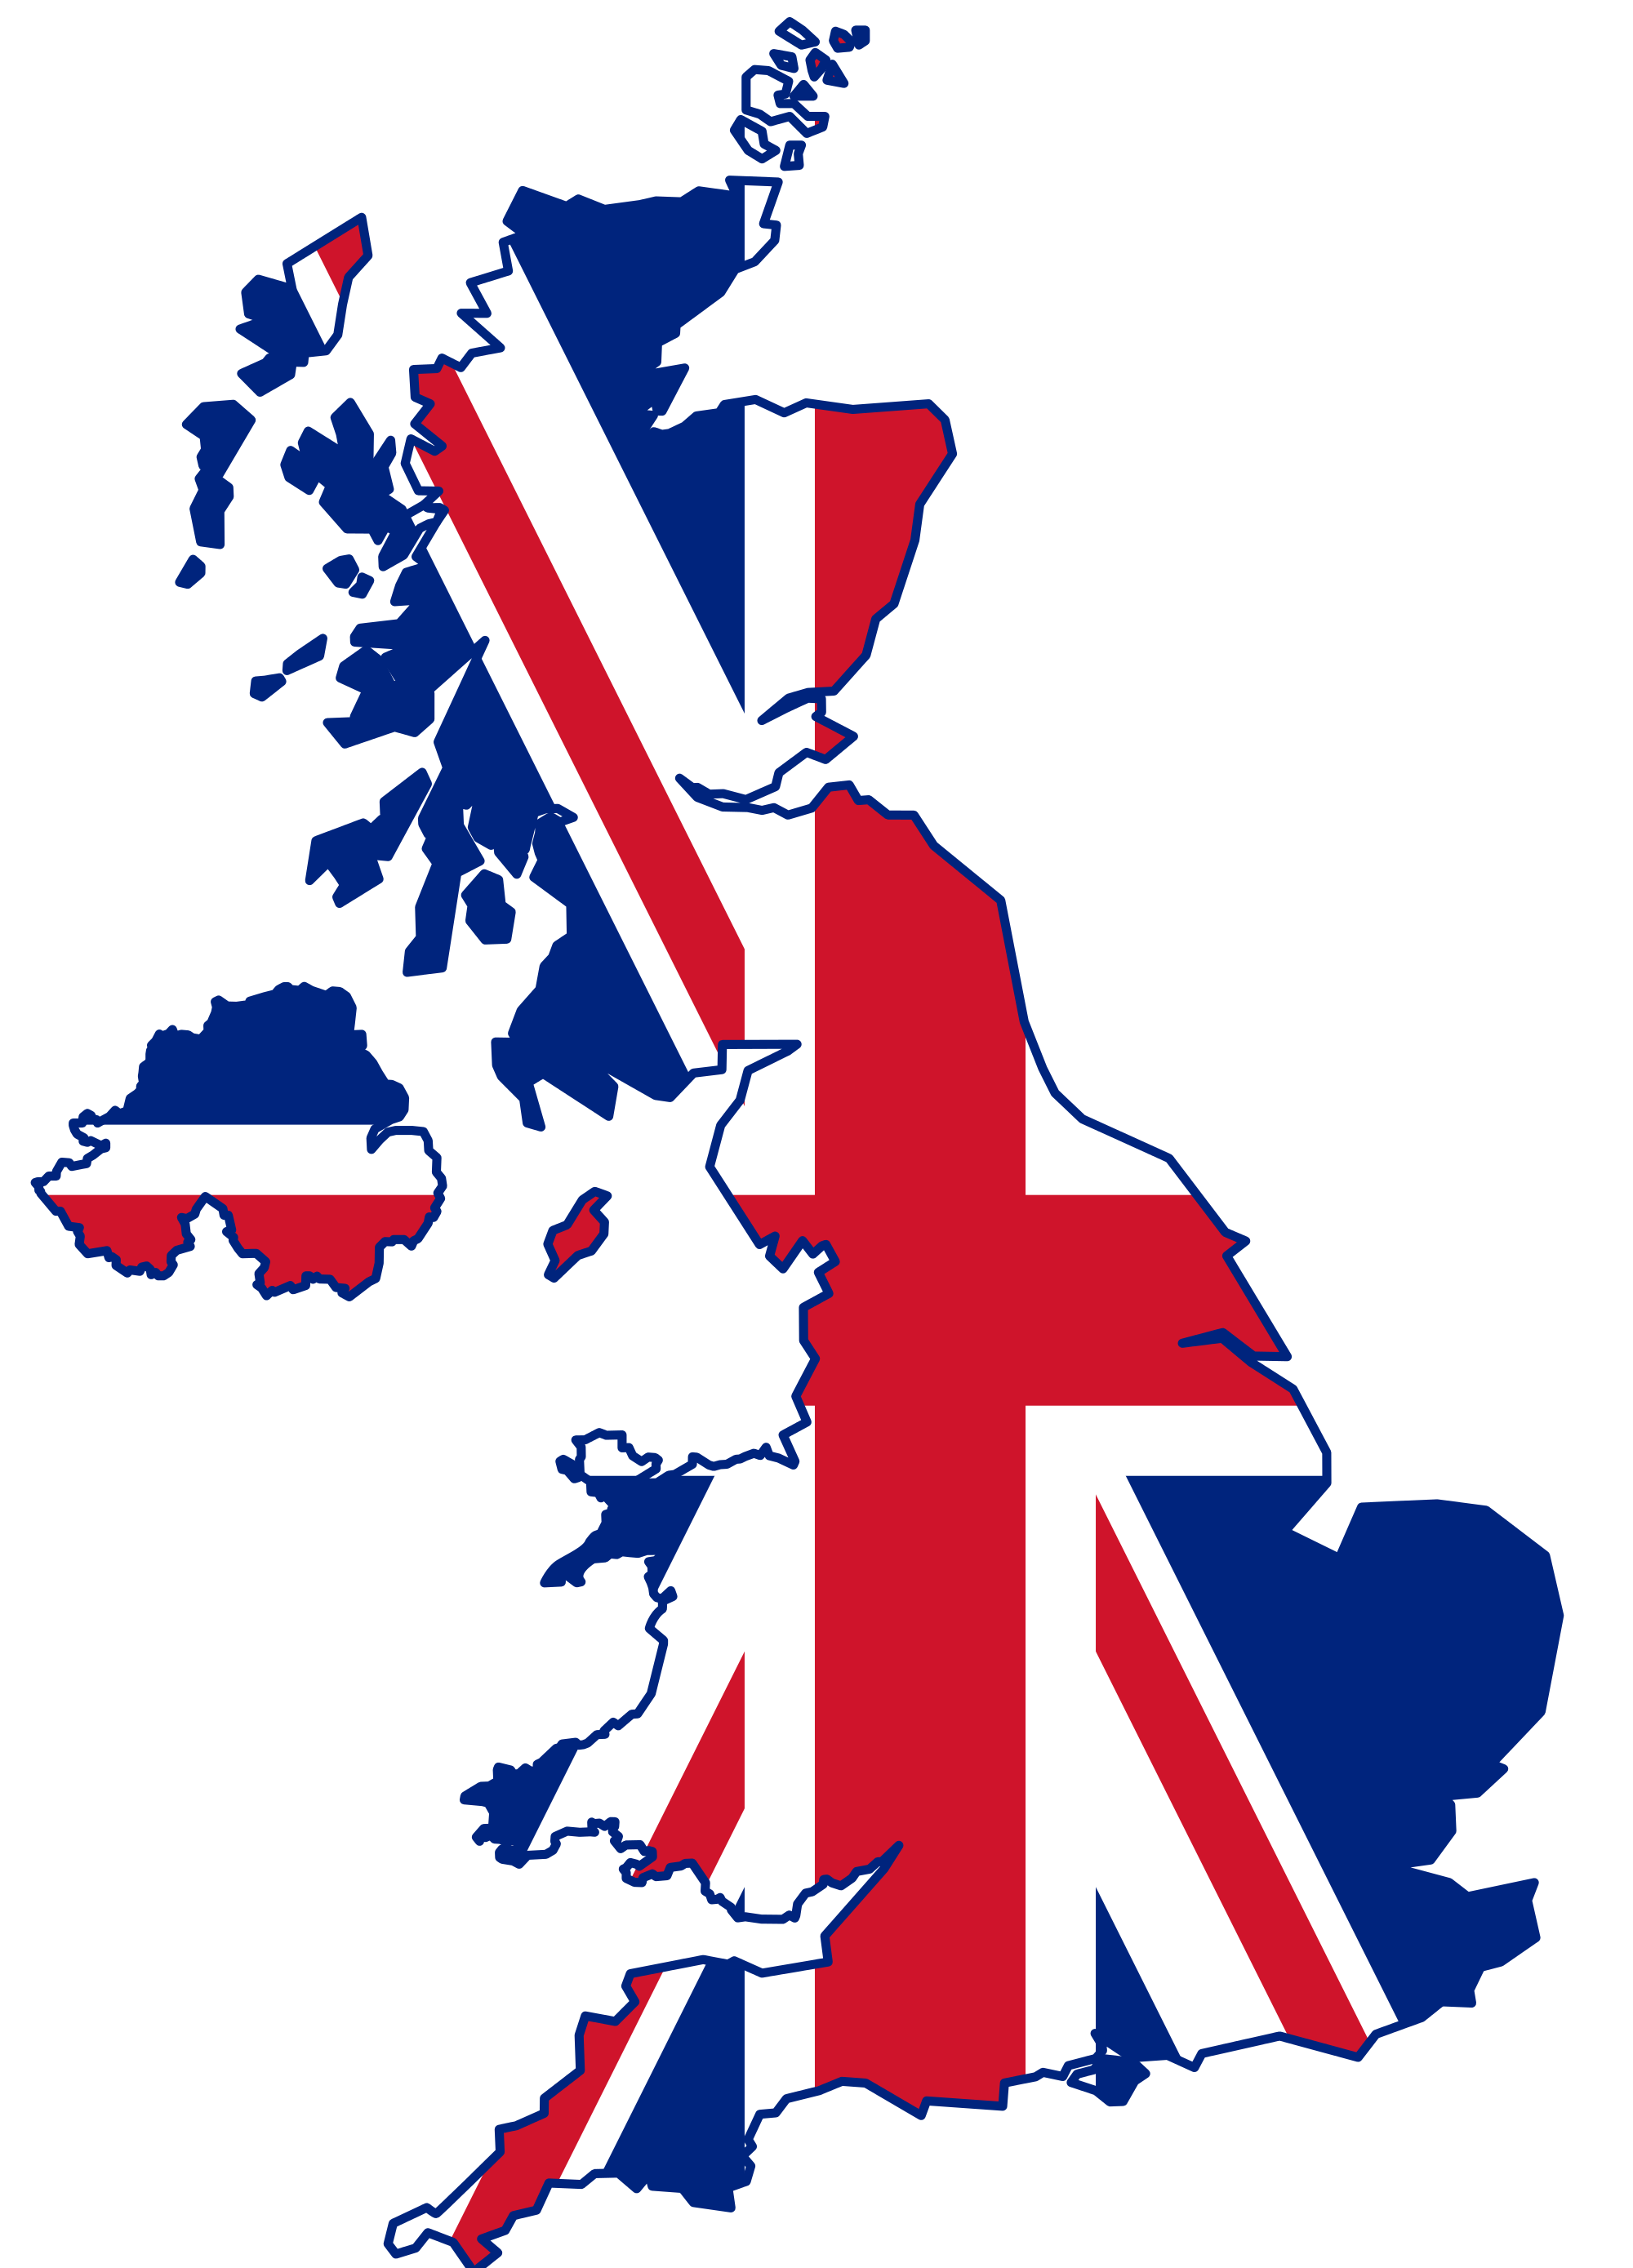 UK_flag.png